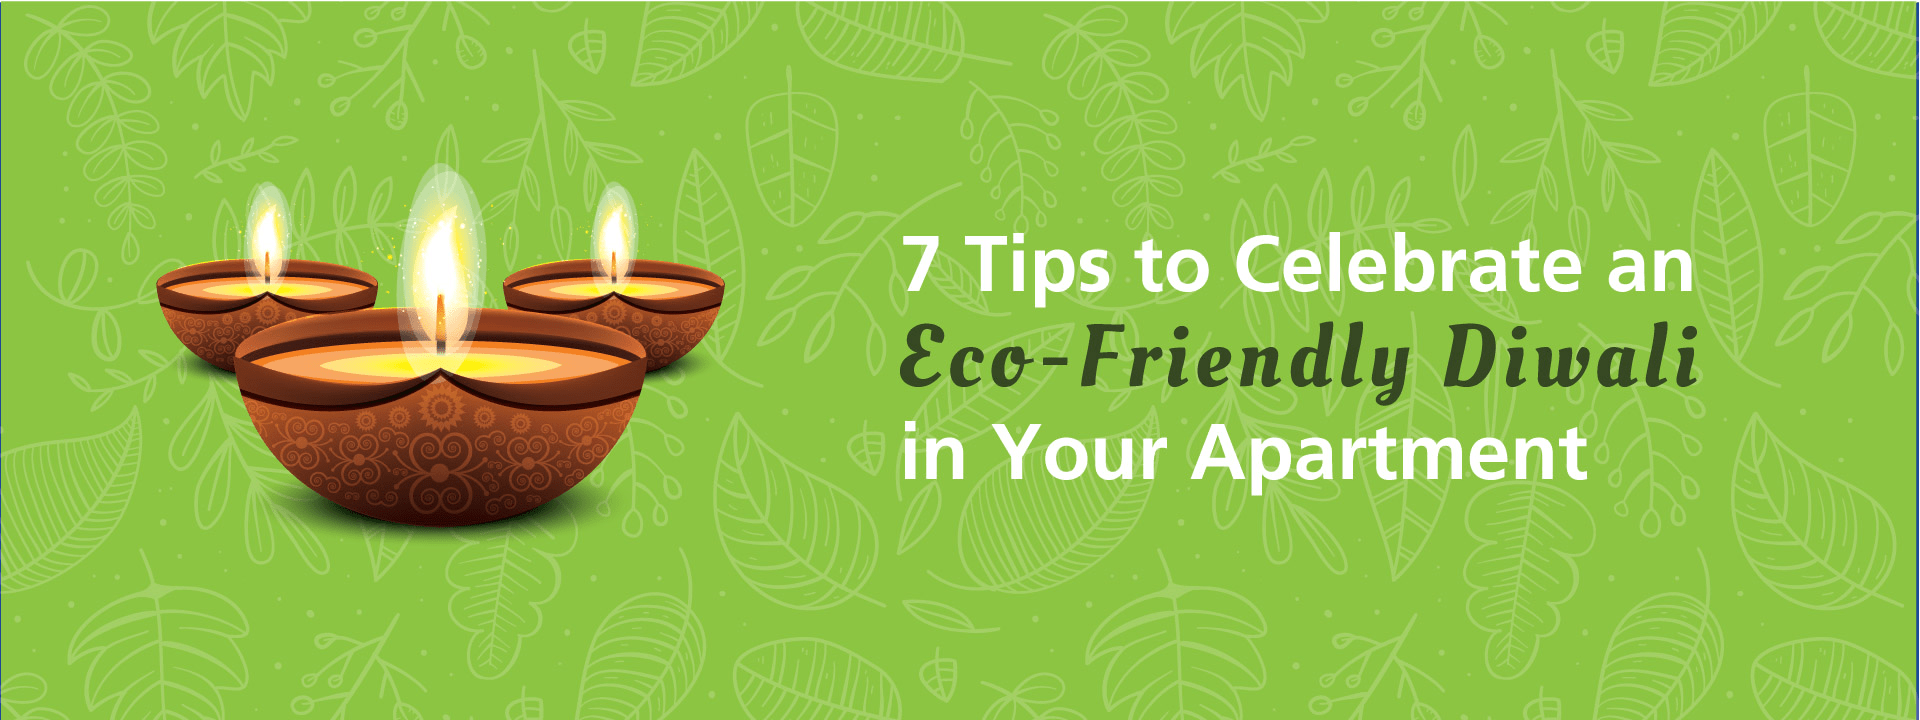 7 Tips to Celebrate an Eco-Friendly Diwali in Your Apartment